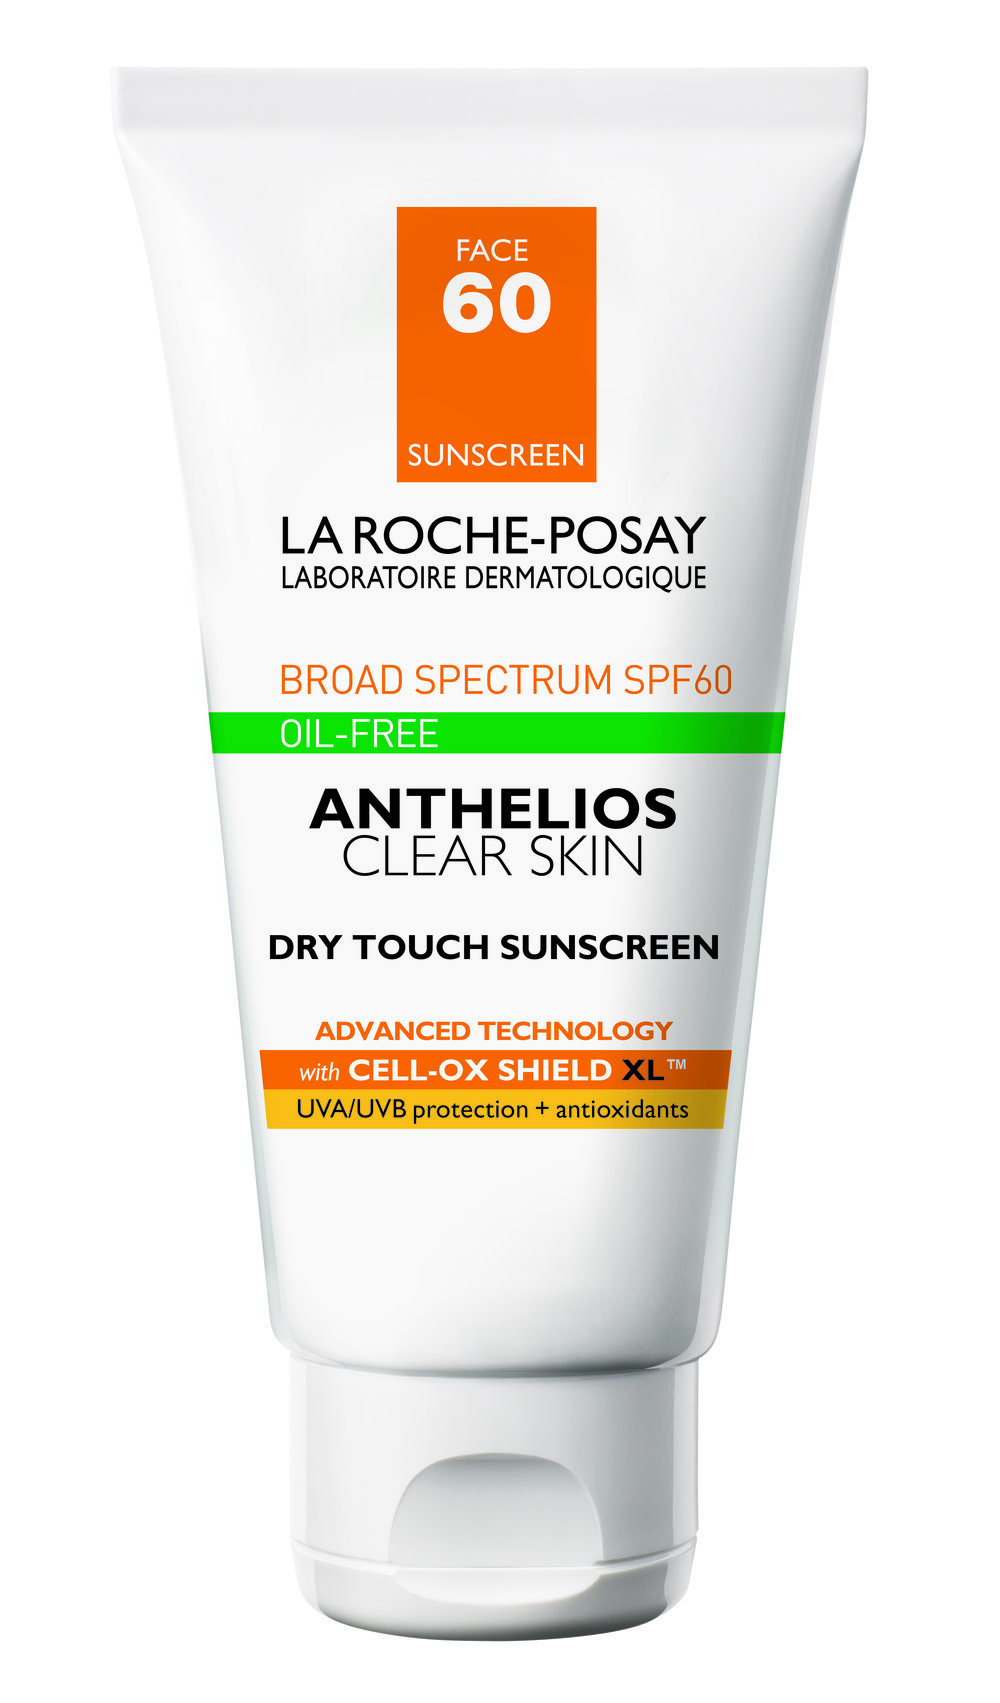 La Roche Posay Anthelios Clear Skin Dry Touch Sunscreen ($20)